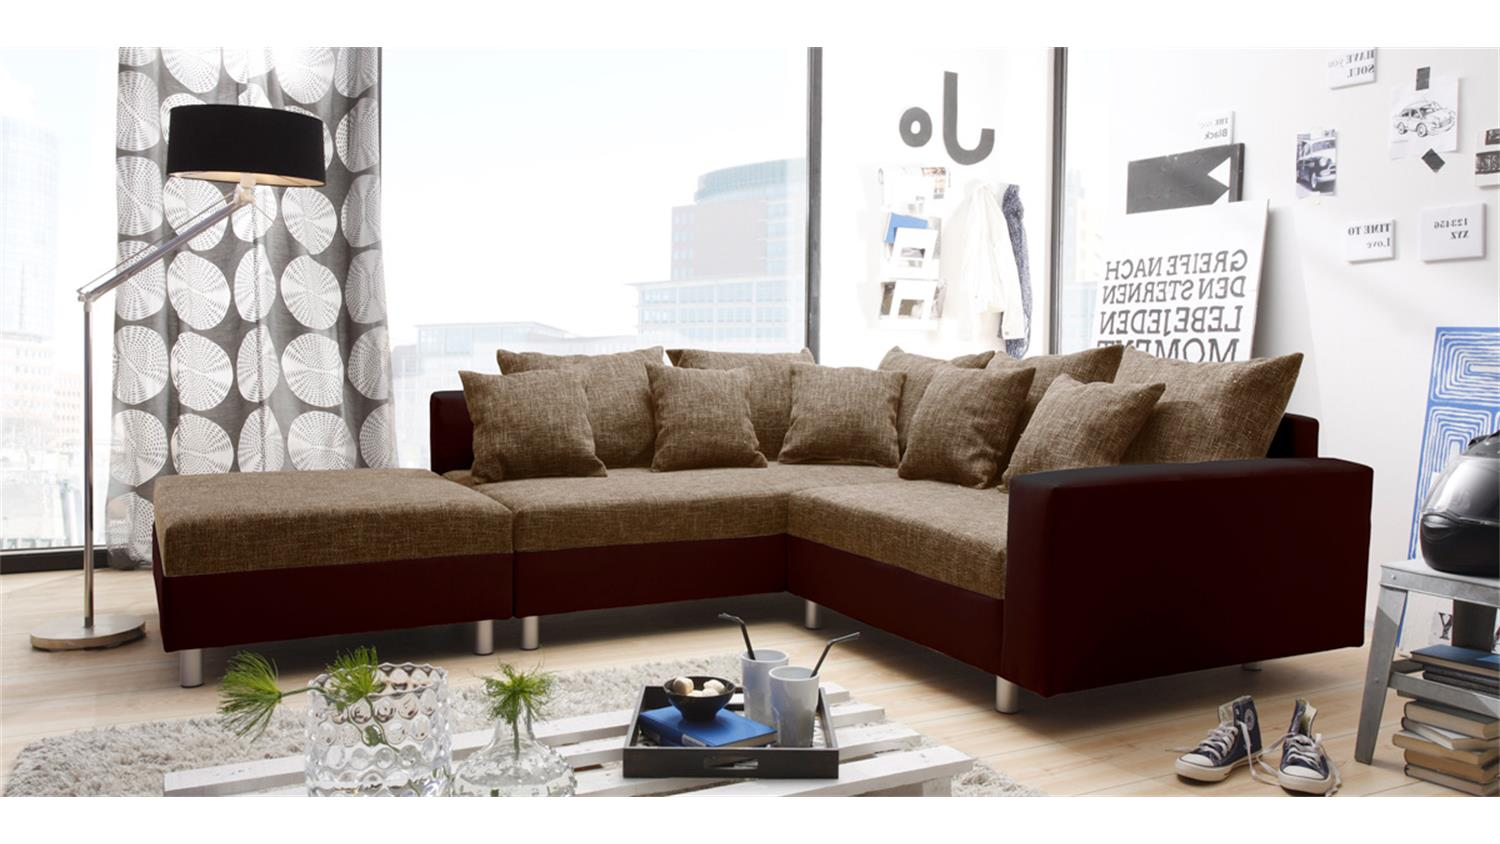 Ecksofa claudia mit hocker braun ottomane links for Ecksofa ottomane